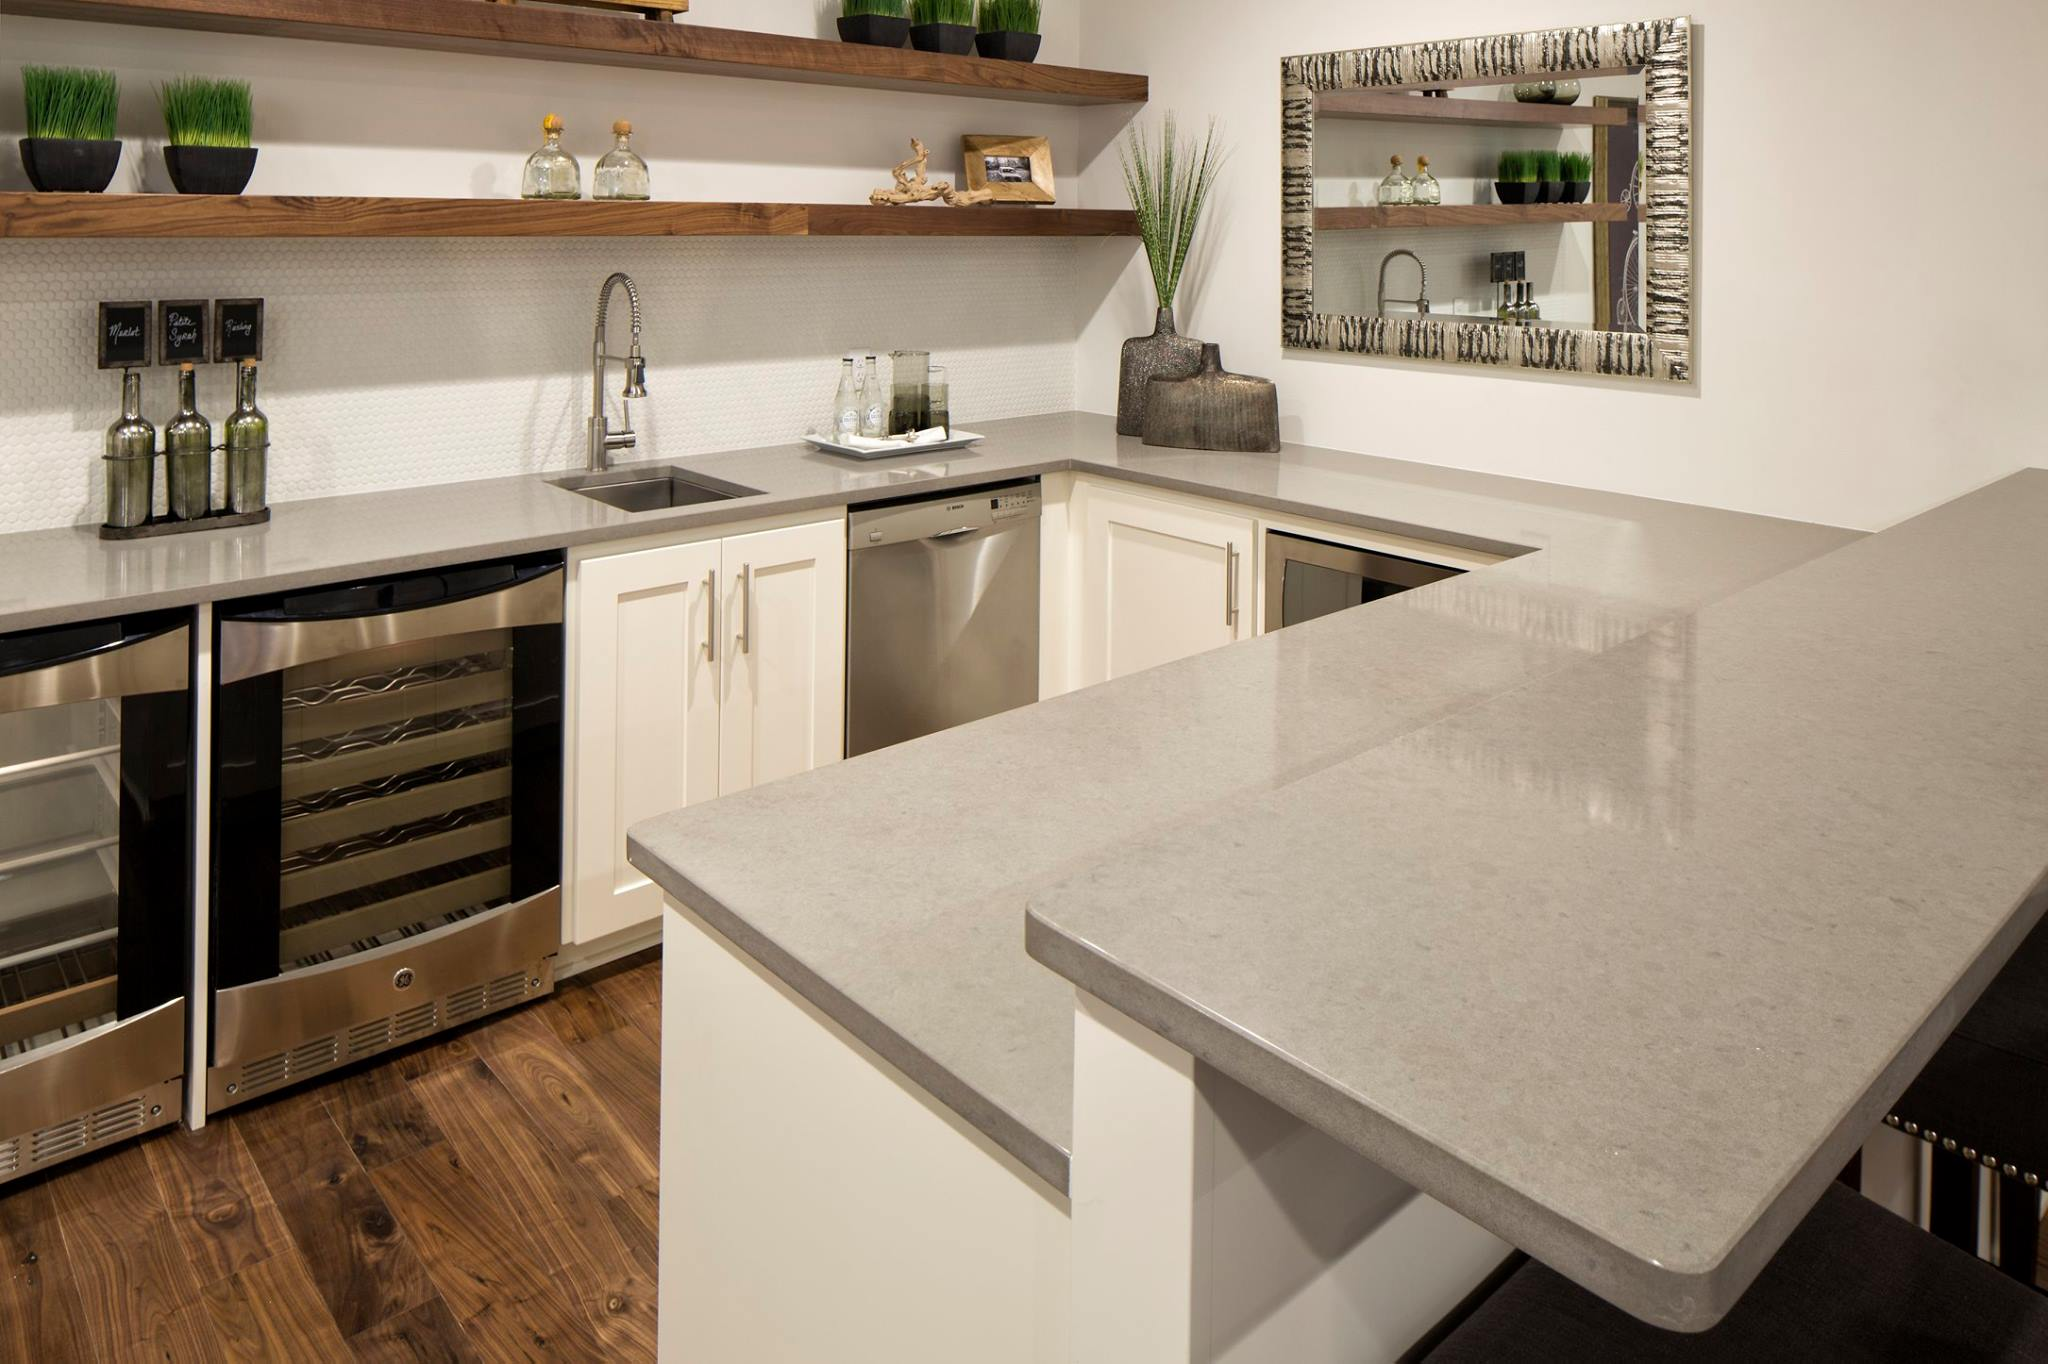 Quartz countertops vs granite countertops which is best What is the whitest quartz countertop